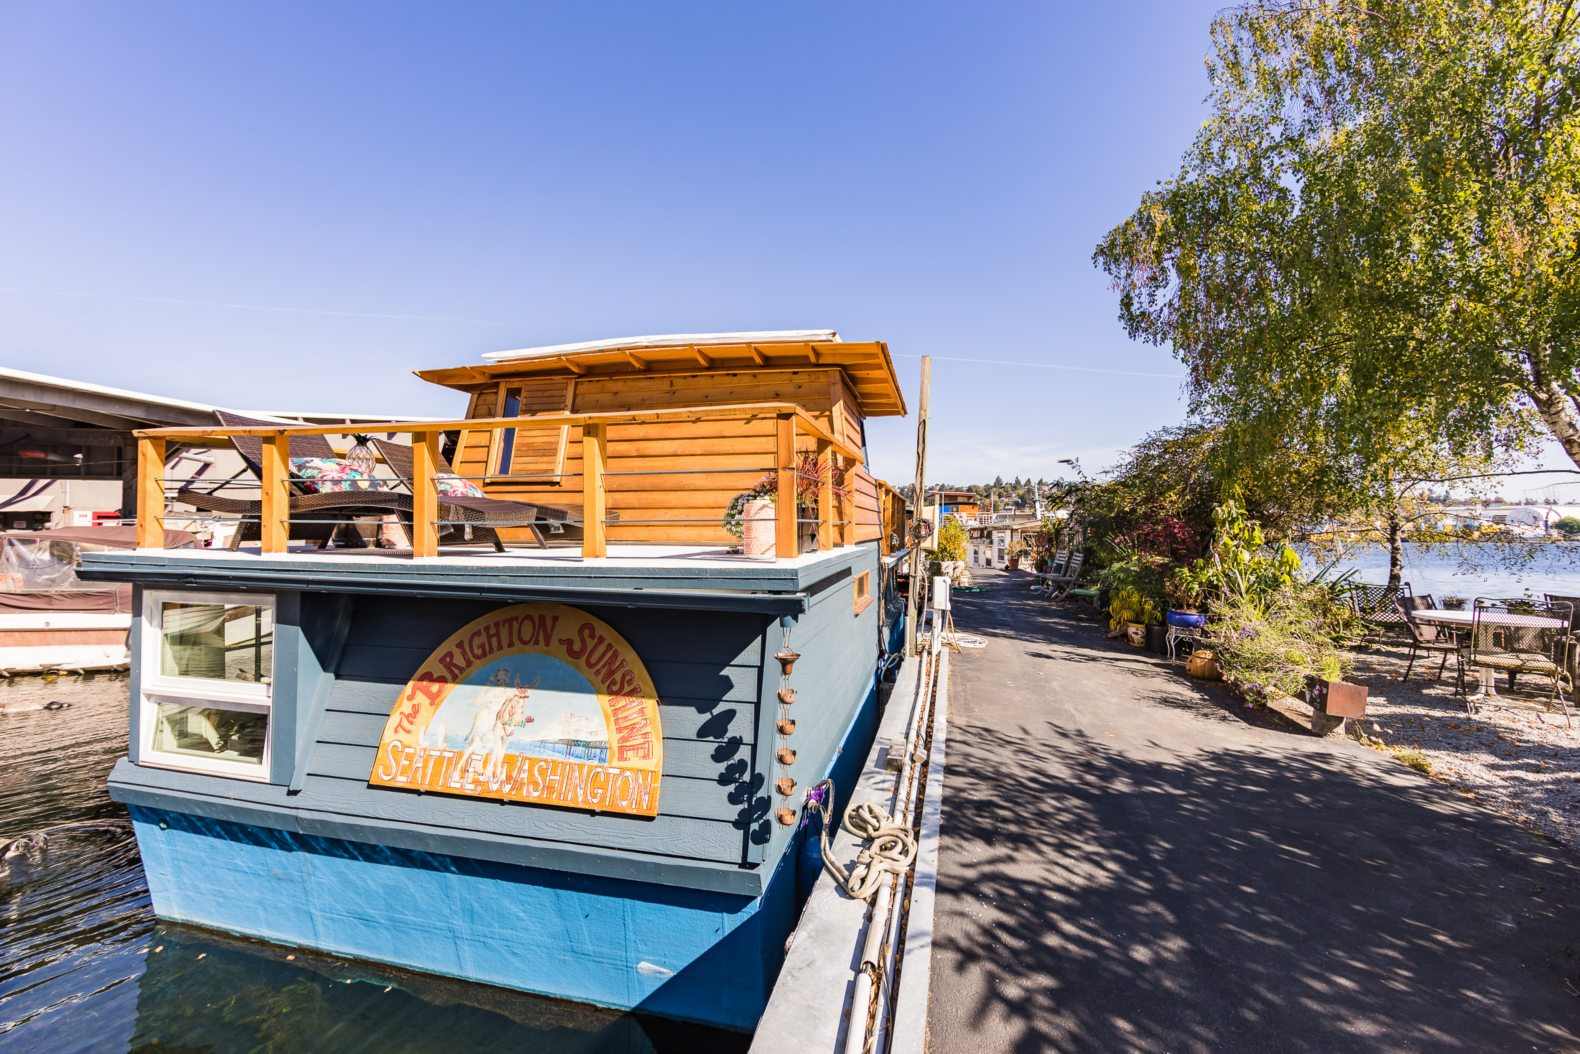 A gorgeous houseboat with a shockingly spacious interior can be yours for $375K